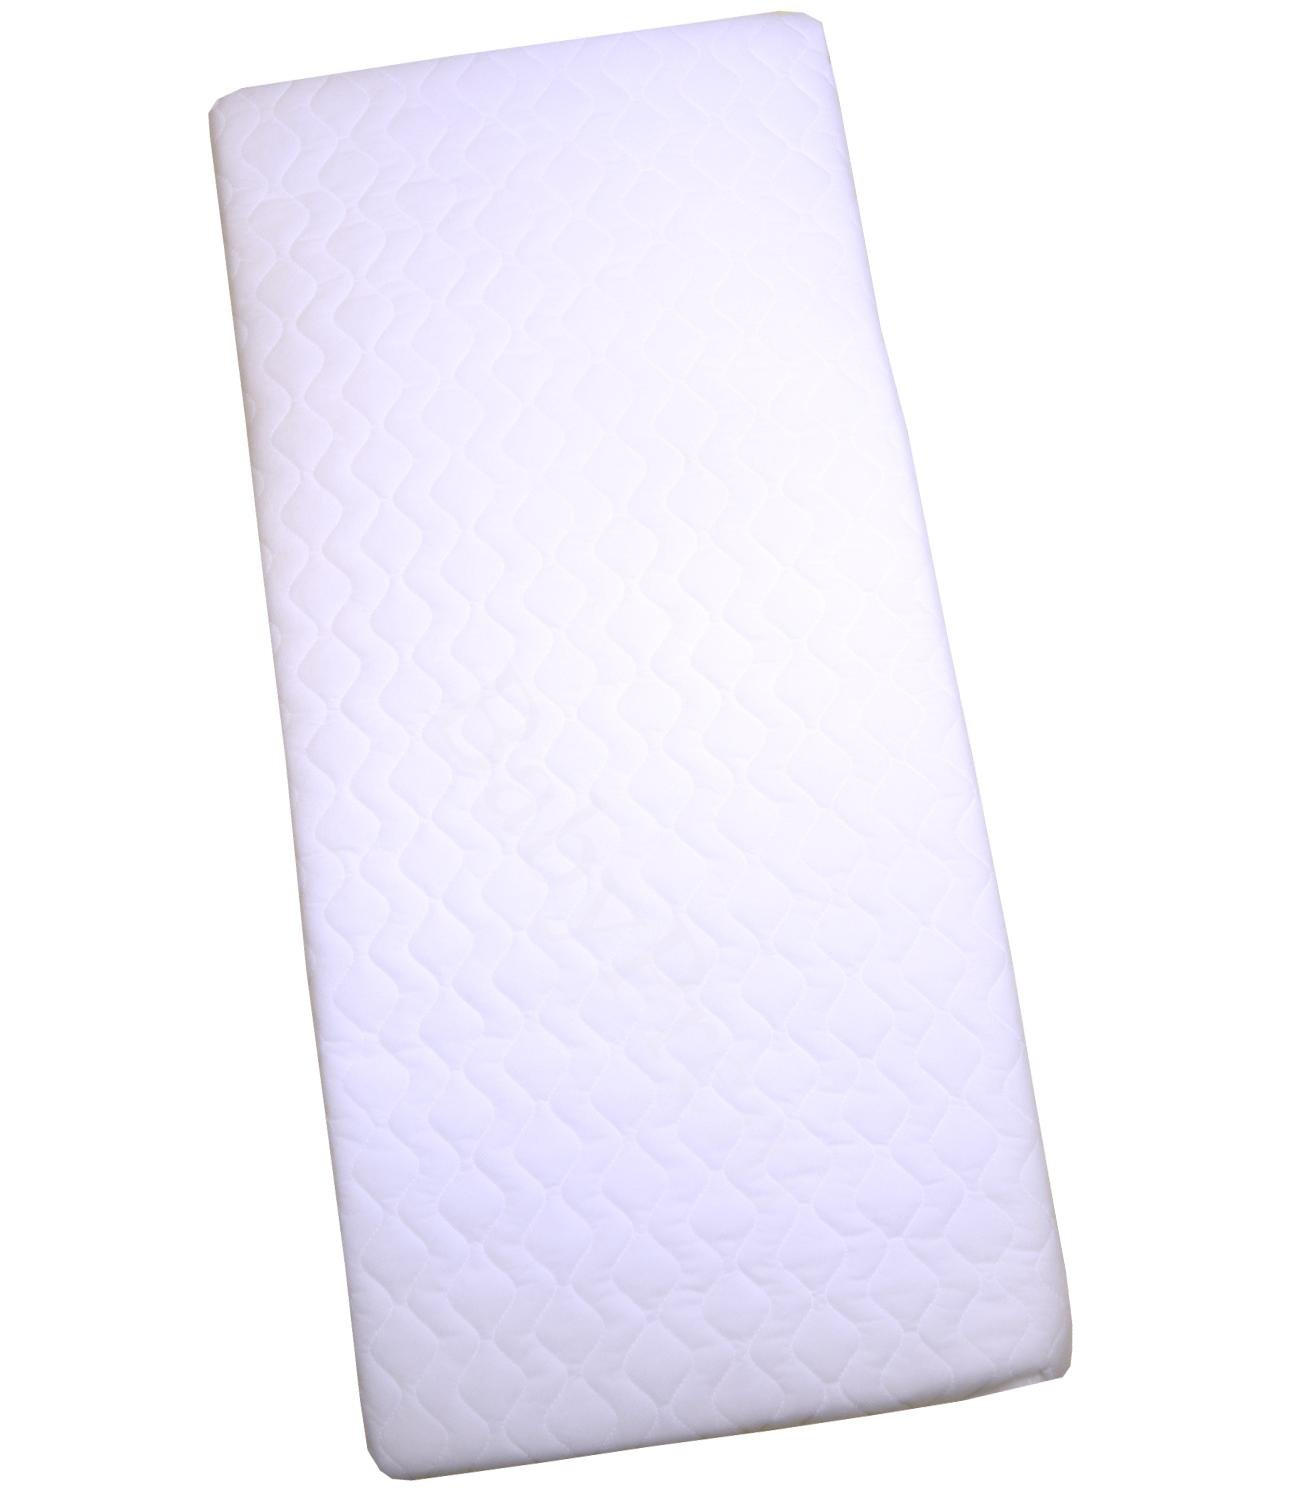 Cradle Mattress 35 x 16 x 1.5'' Standard or Quilted Option QUILTED